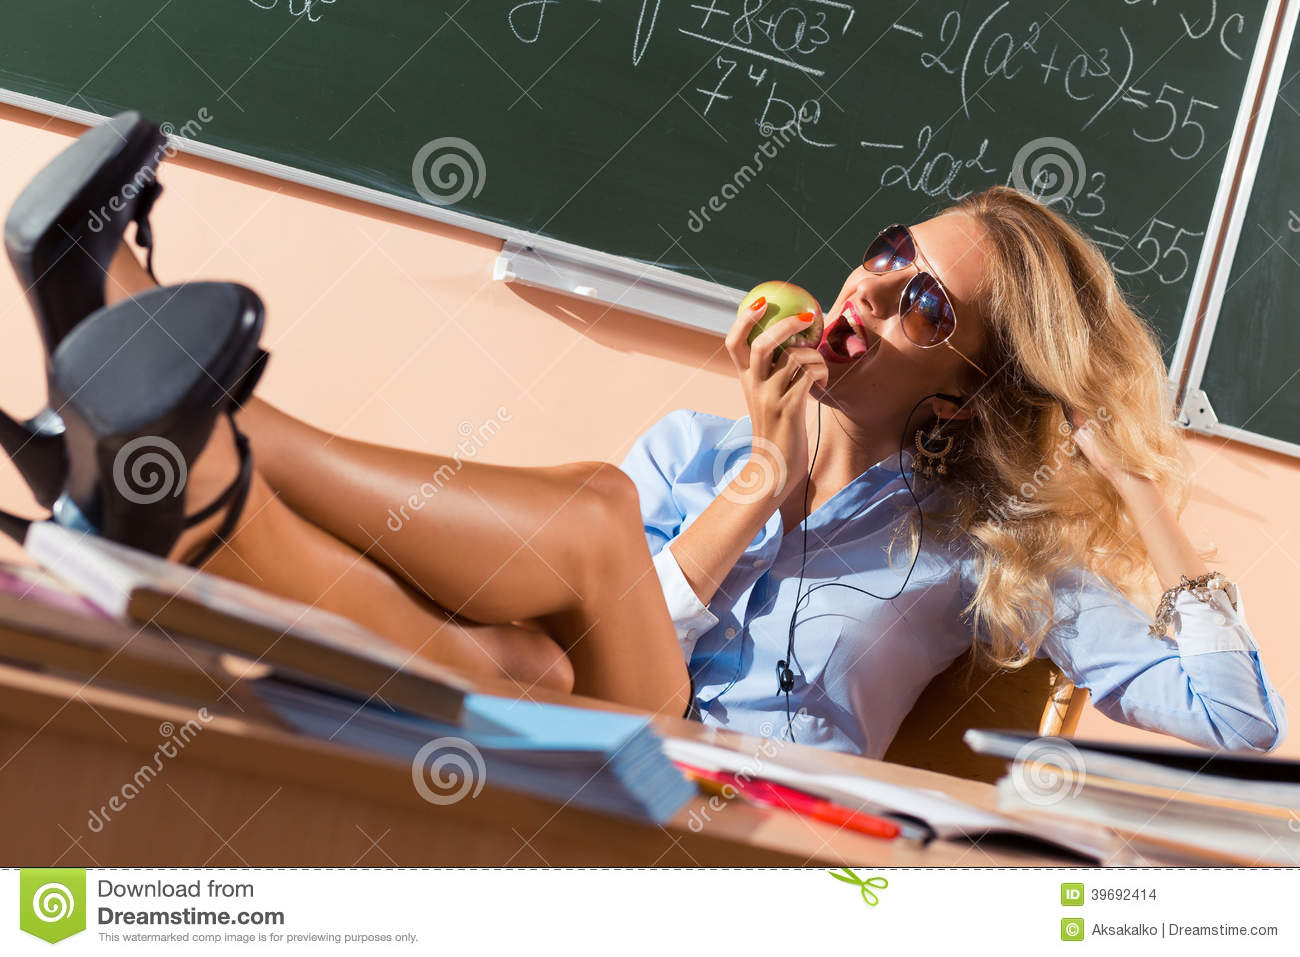 Beautiful Young Sexy Teacher Stock Photo - Image: 39692414: http://dreamstime.com/stock-images-beautiful-young-sexy-teacher-resting-classes-image39692414